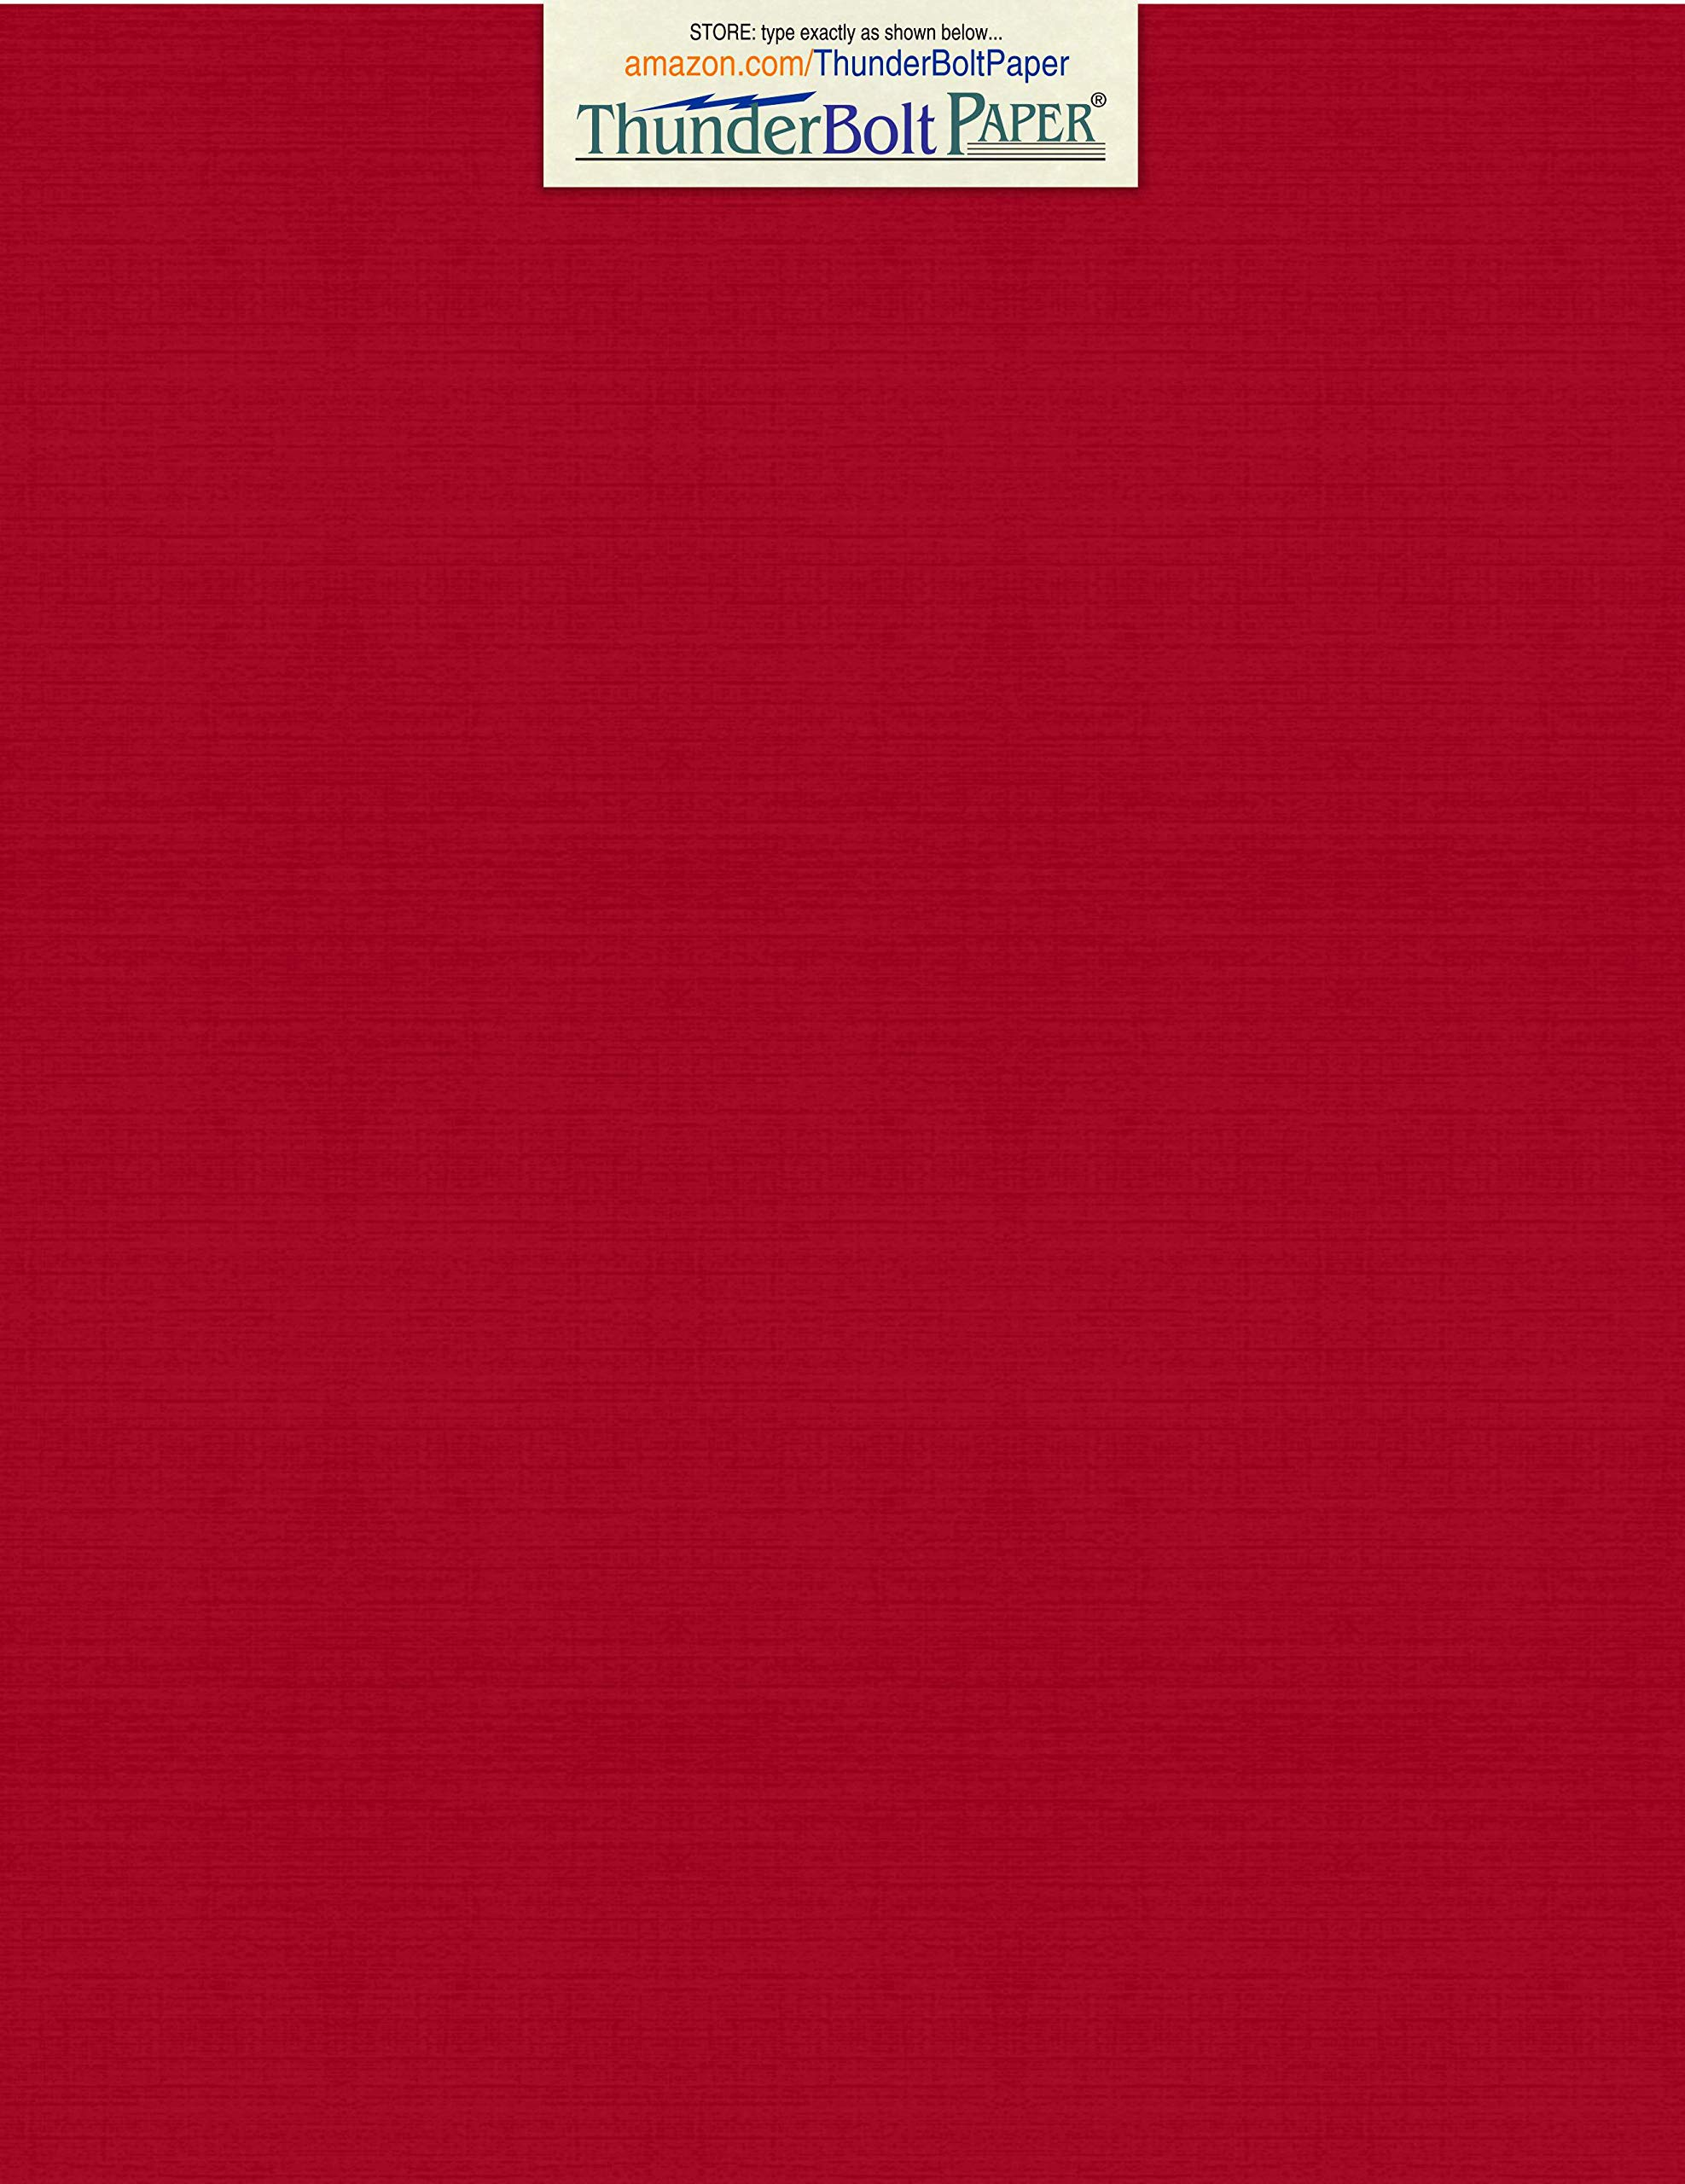 50 Deep Bright Red Linen 80# Cover Paper Sheets - 8.5'' X 11'' (8.5X11 Inches) Standard Letter|Flyer Size - 80 lb/pound Card Weight - Fine Linen Textured Finish - Deep Dye Quality Cardstock by ThunderBolt Paper